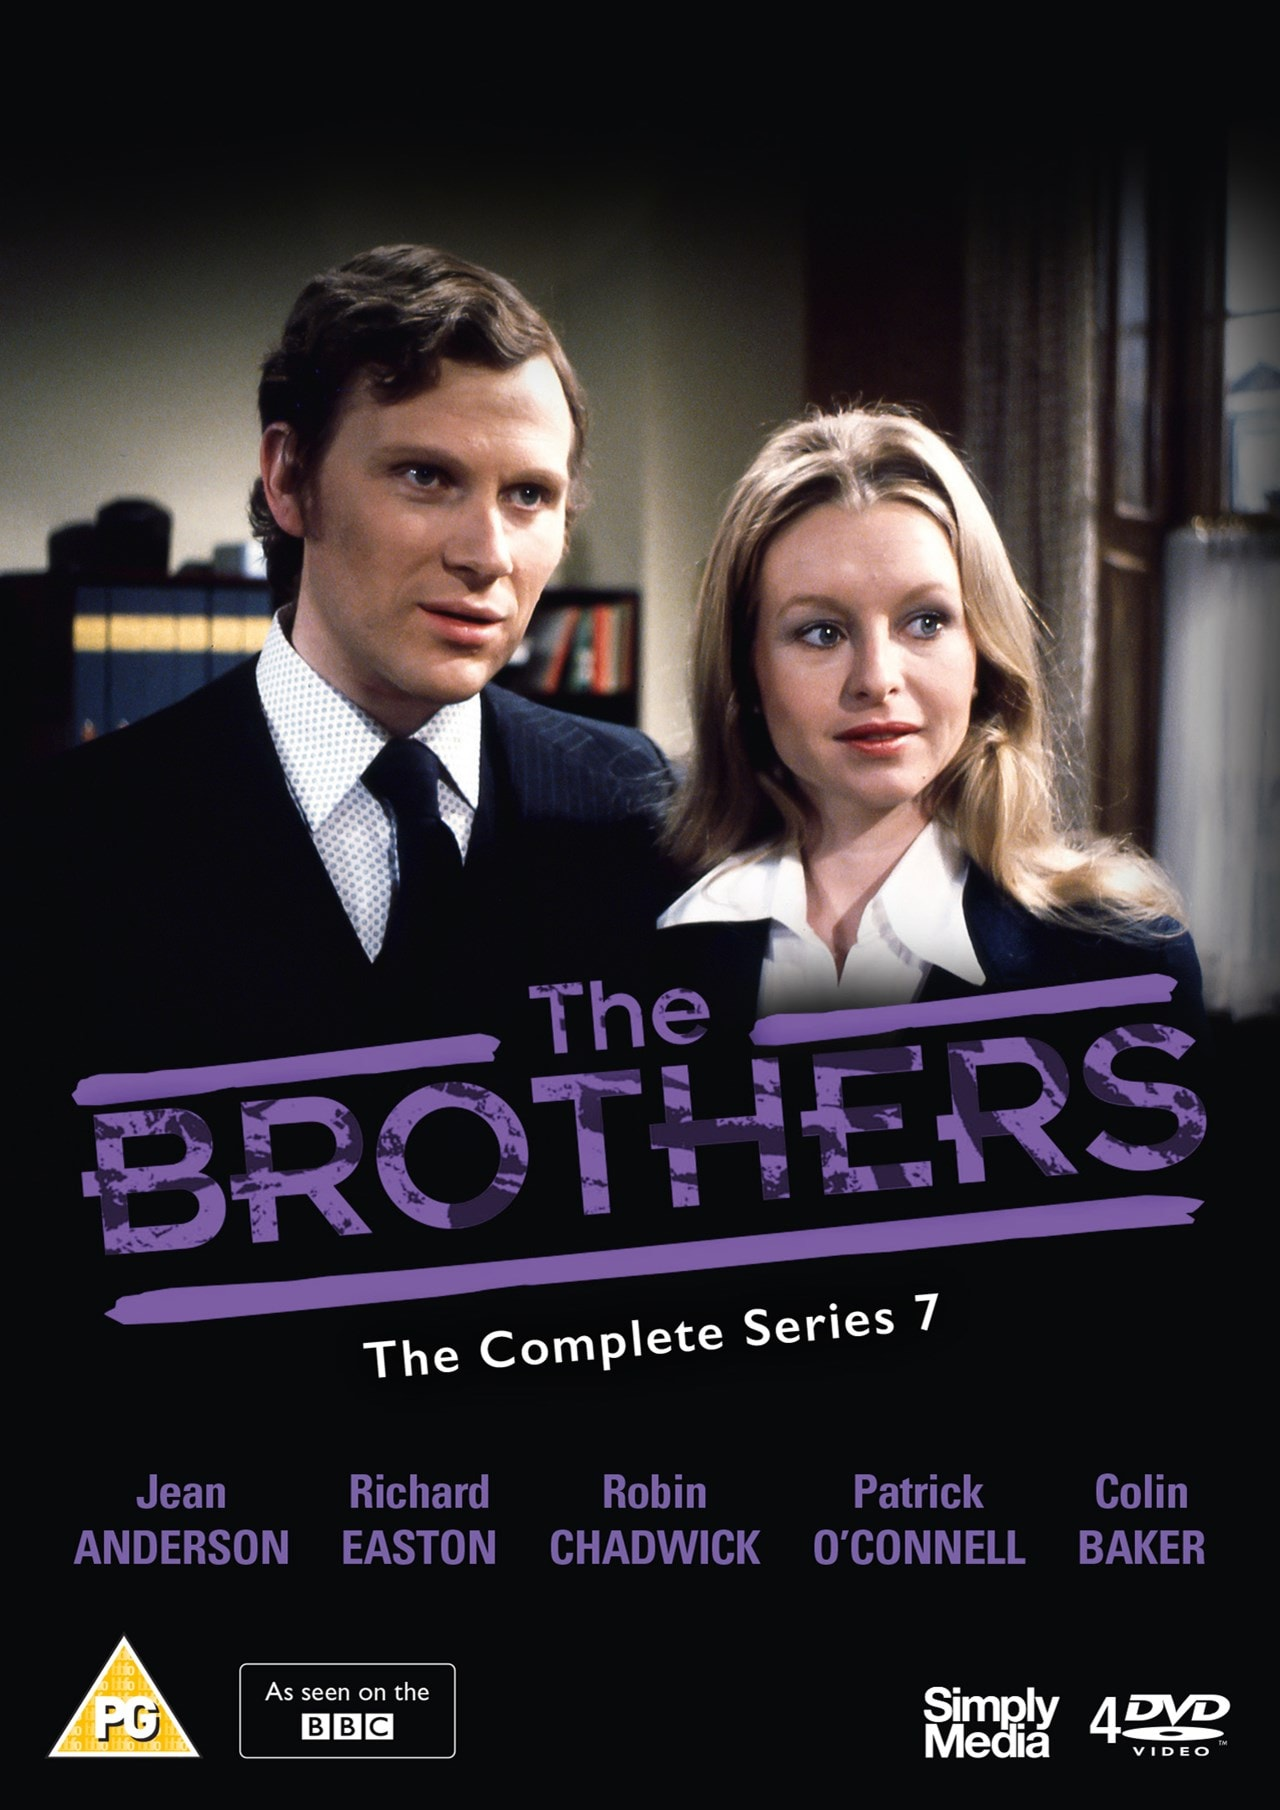 The Brothers: The Complete Series 7 - 1